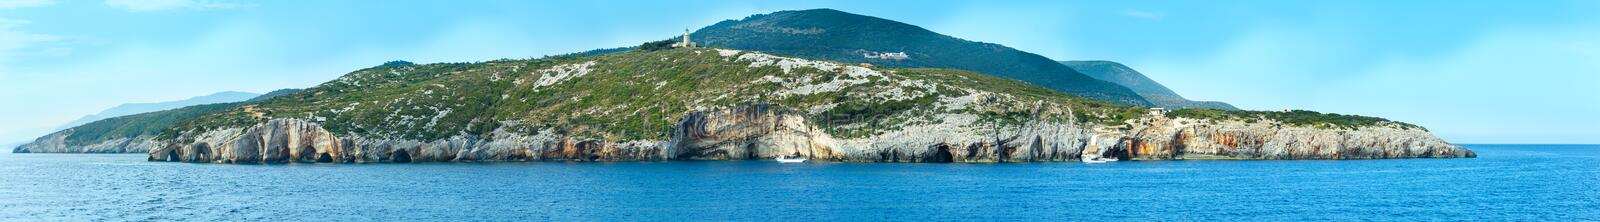 The Blue Caves in Zakynthos (Greece). Panorama. royalty free stock photography